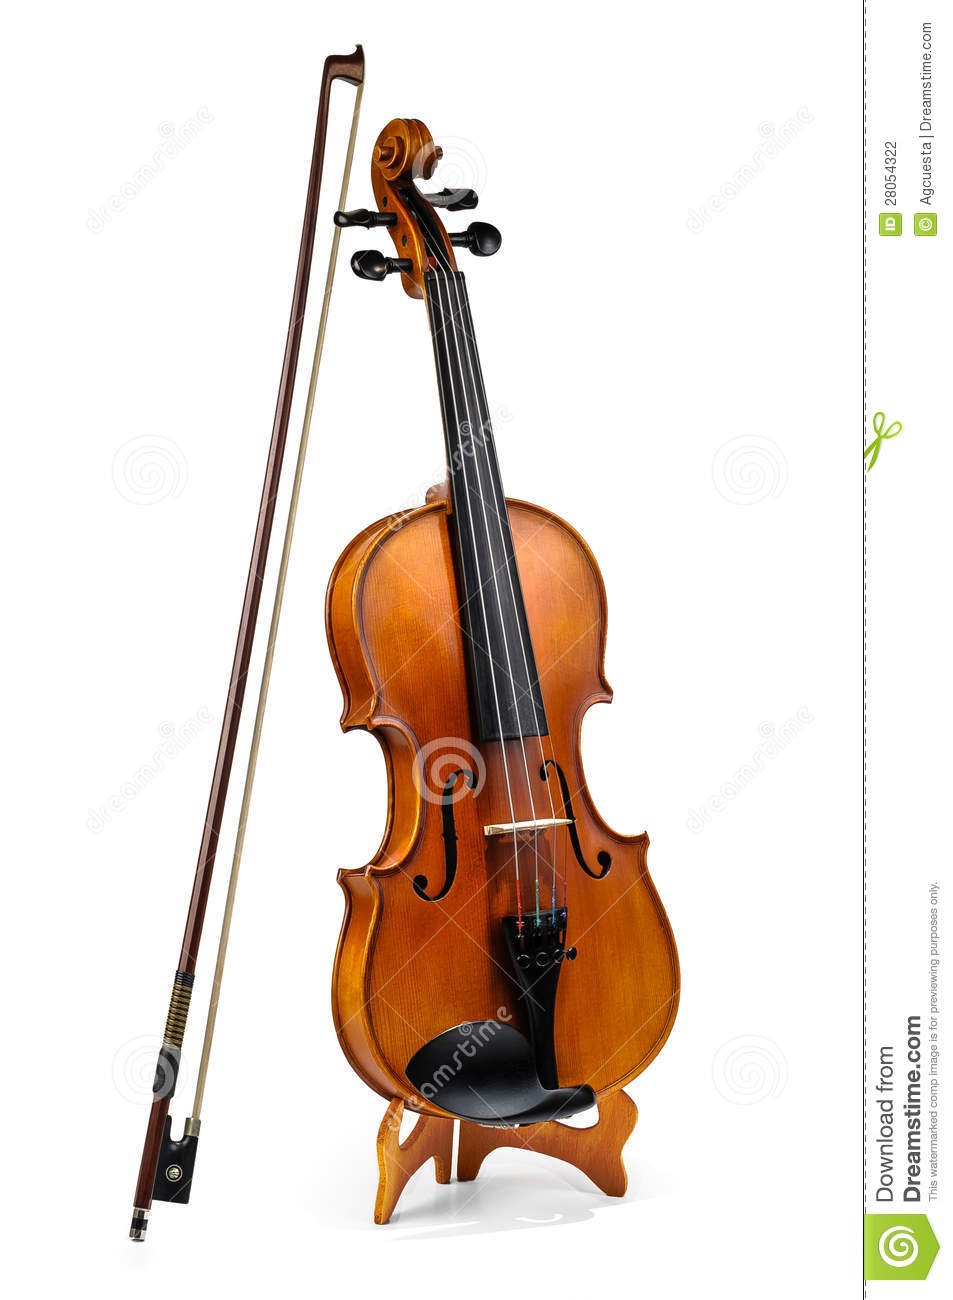 violin and fiddle stick stock photo. image of fiddle - 28054322